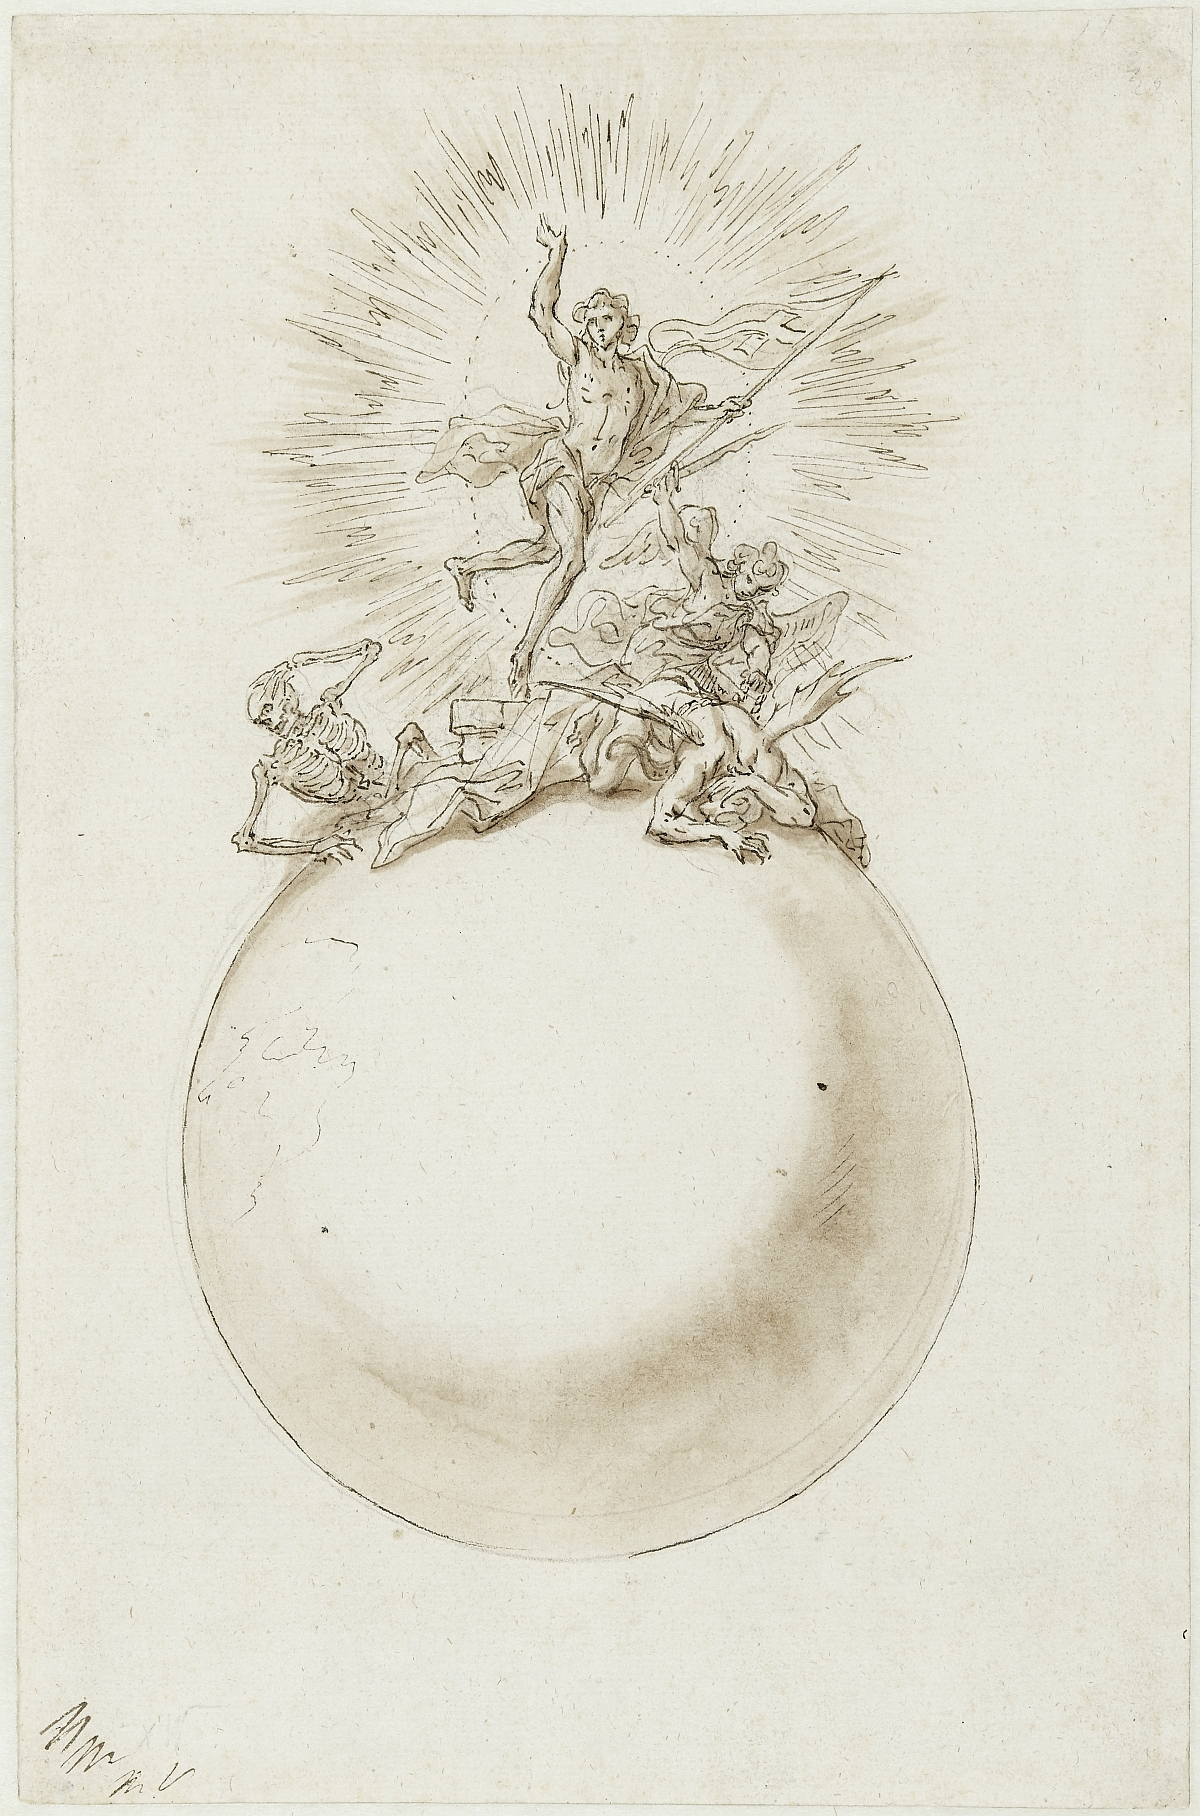 Christus as Victor over Death and Hell, Martino Altomonte, pen and bistre over lead stylus, brown wash on paper, inv. no. RO 1080; design for the tabernacle crown of the Christ Altar in the Trinity Chapel of Stadl-Paura near Lambach, 1723